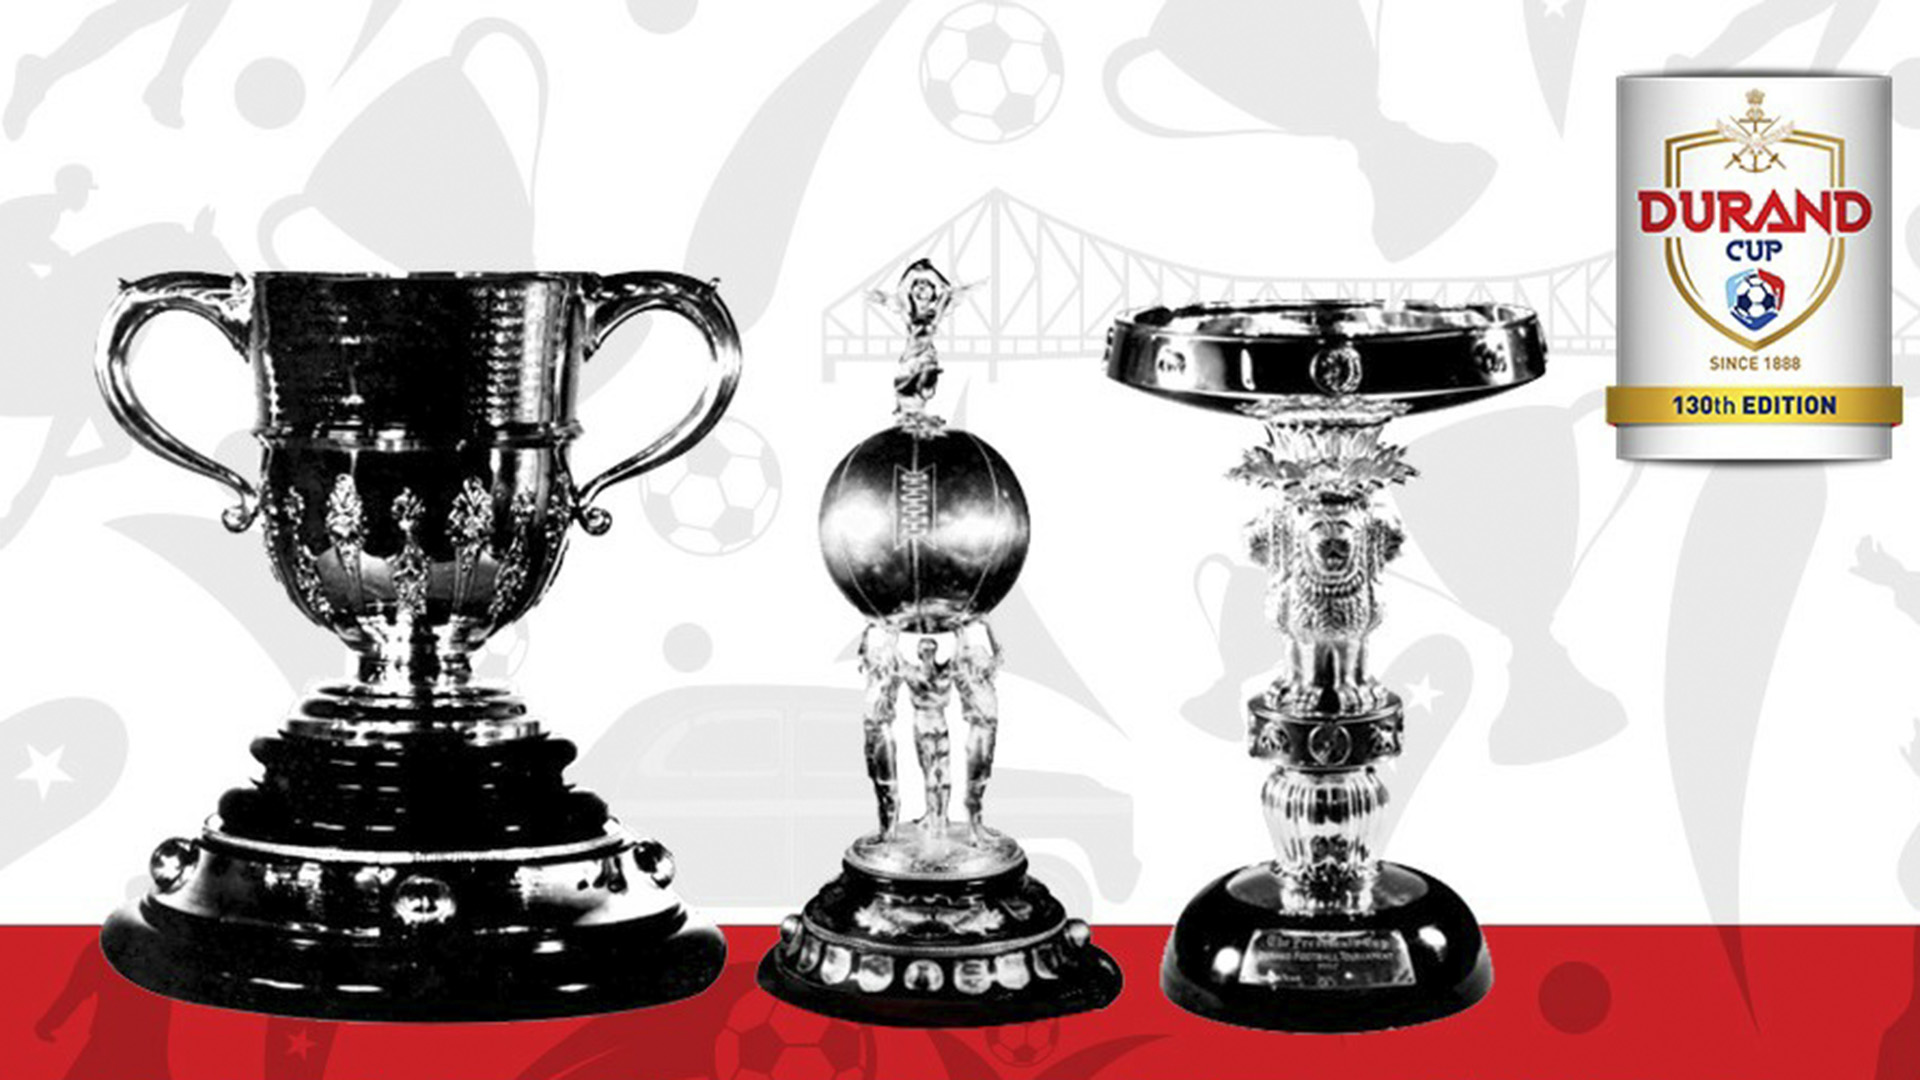 India's Oldest Football Tournament Durand Cup Returns For 130th Edition